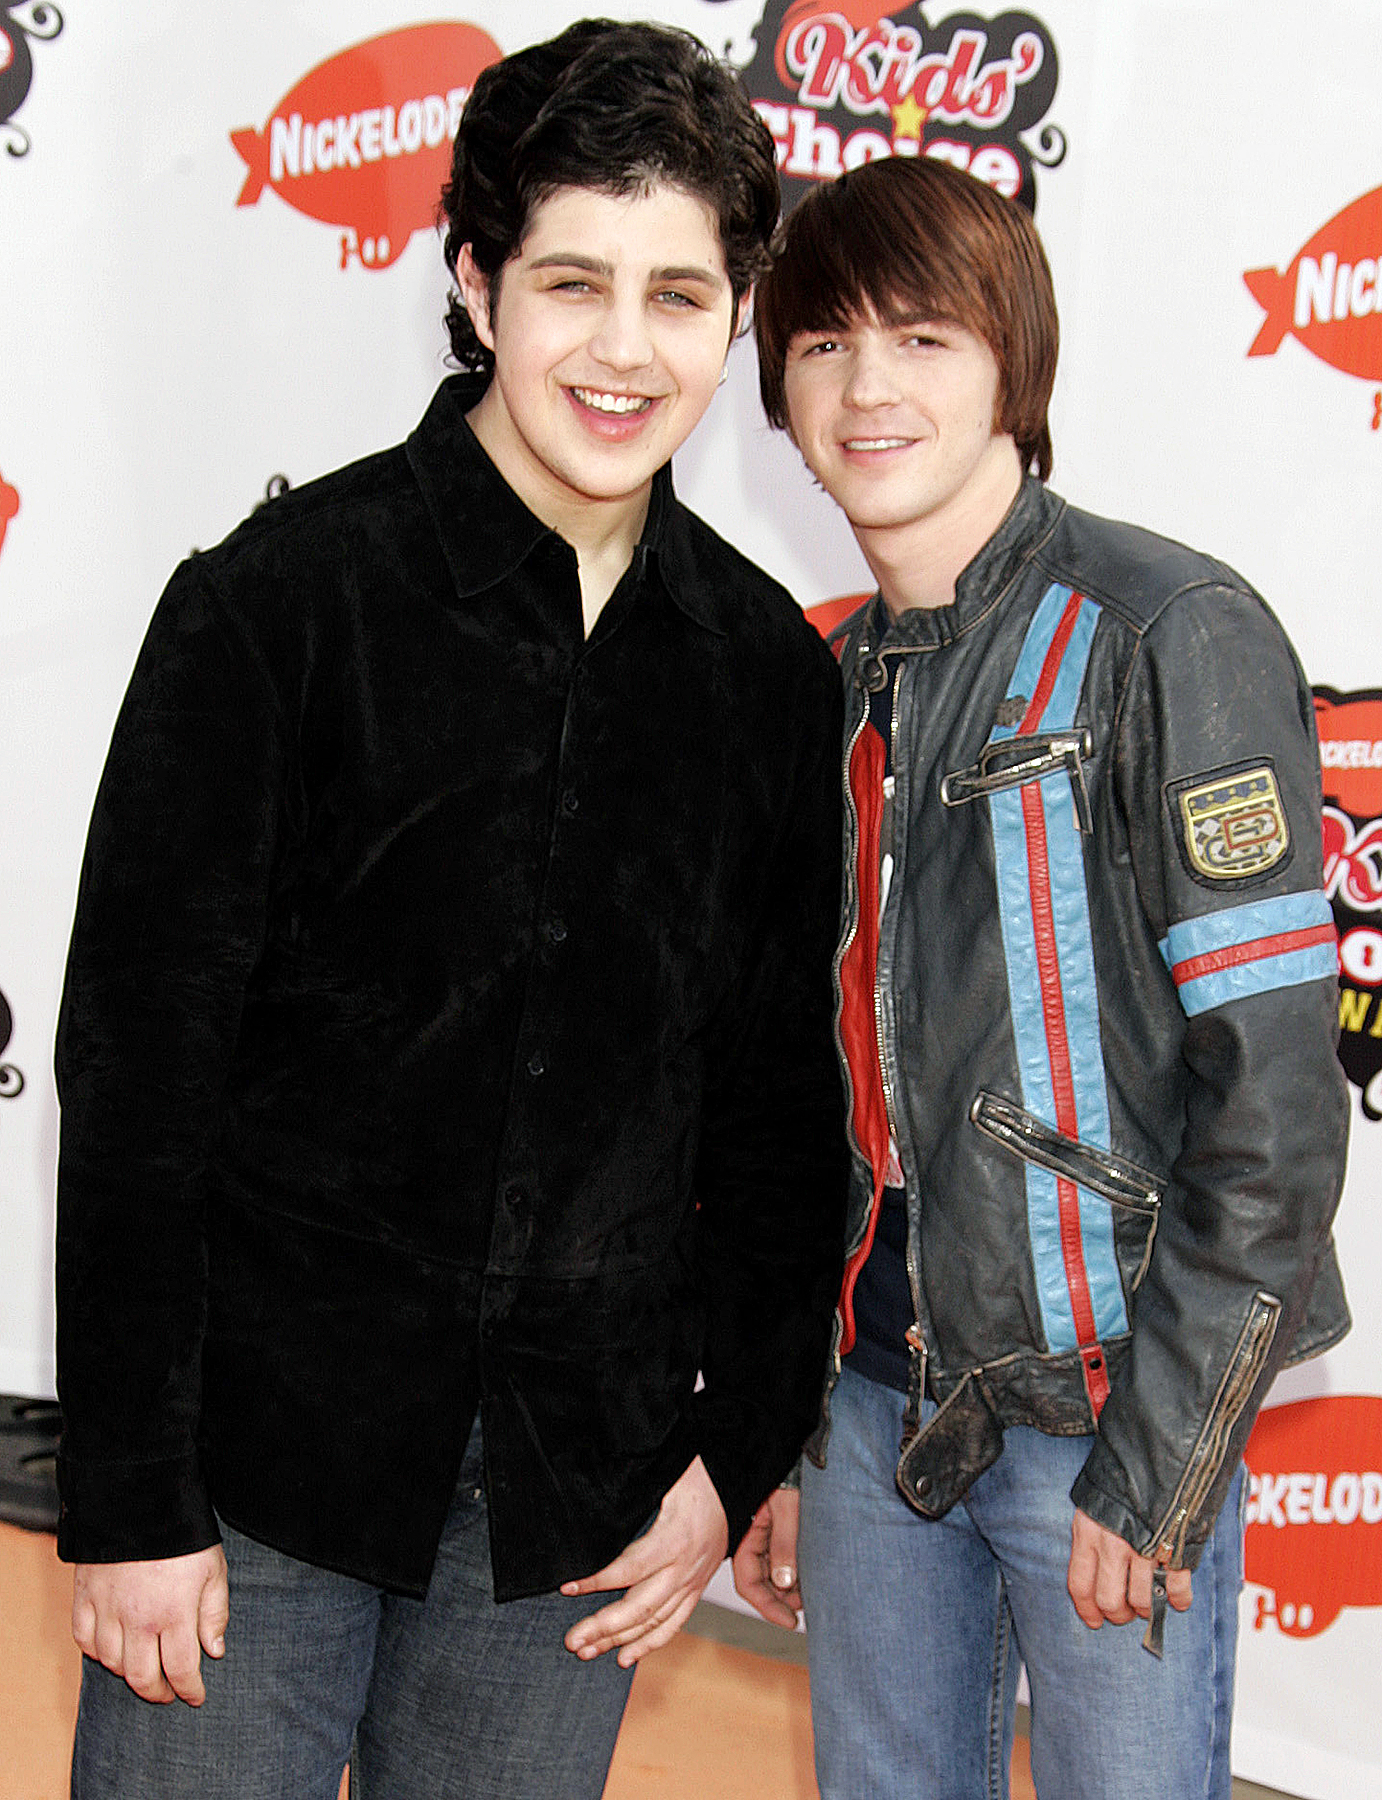 Drake Bell Josh Peck - They're red carpet pros by now! The costars posed together once again at the Nickelodeon Kids' Choice Awards at UCLA's Pauley Pavilion in Westwood.